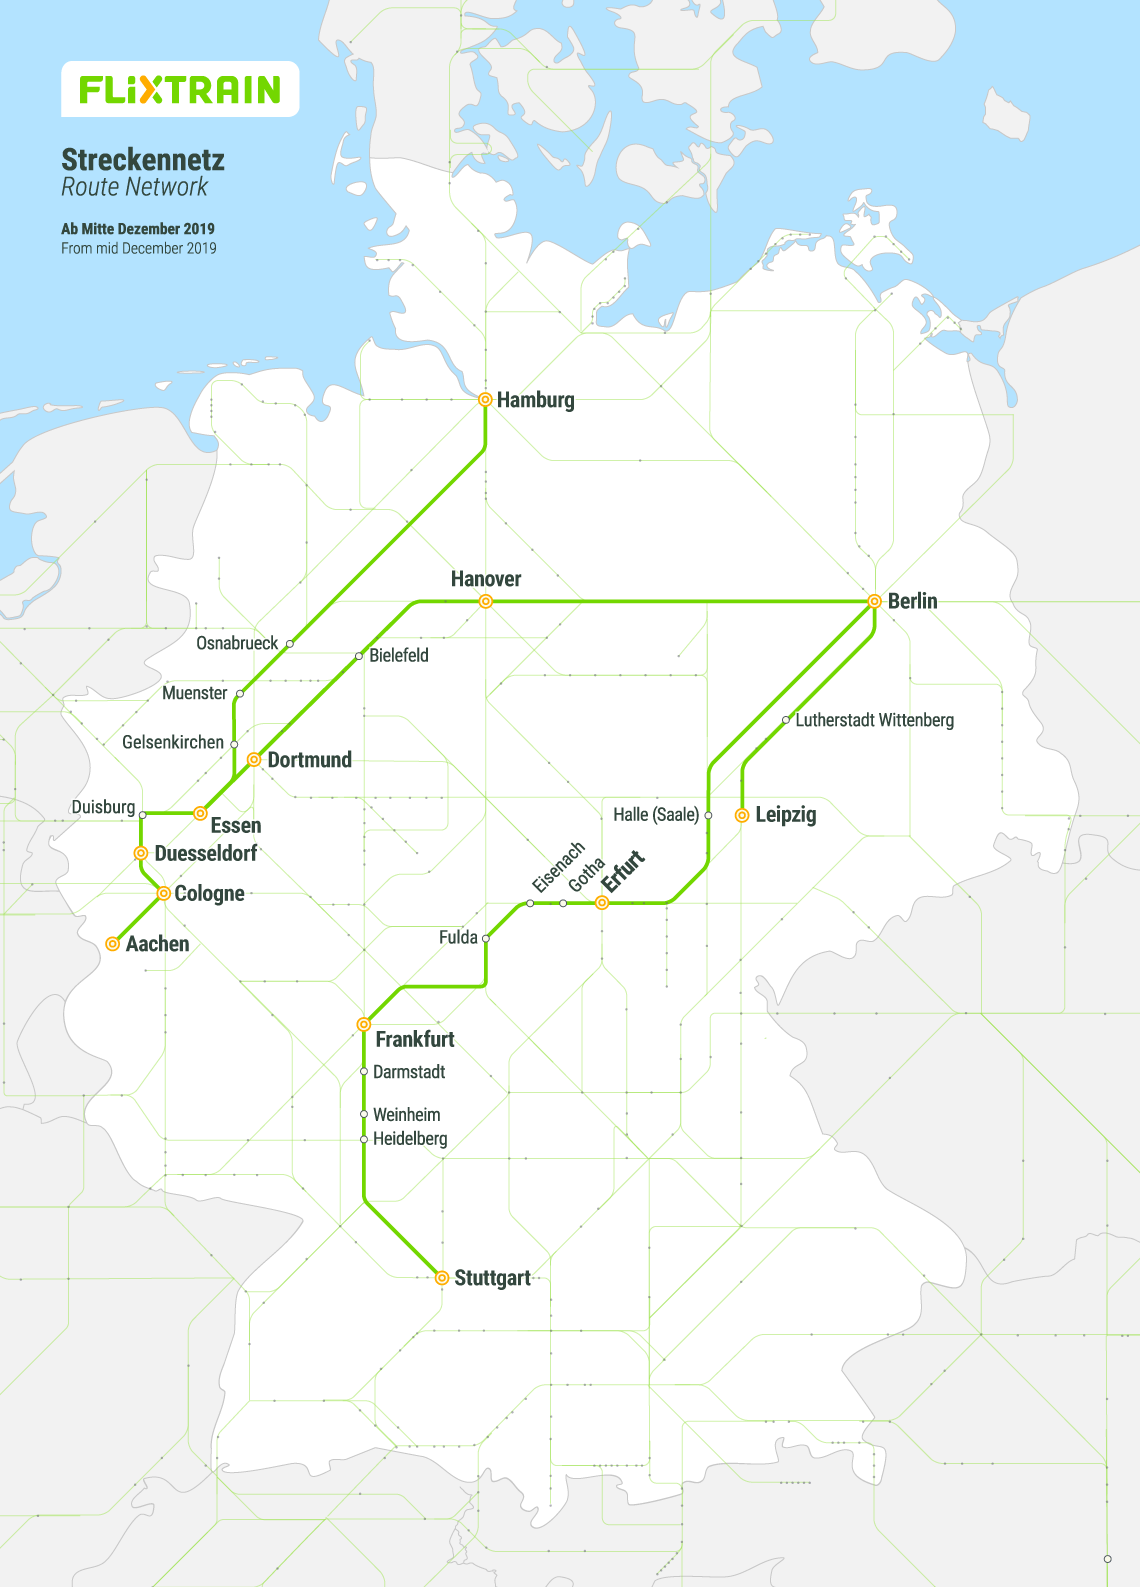 FlixTrain route map